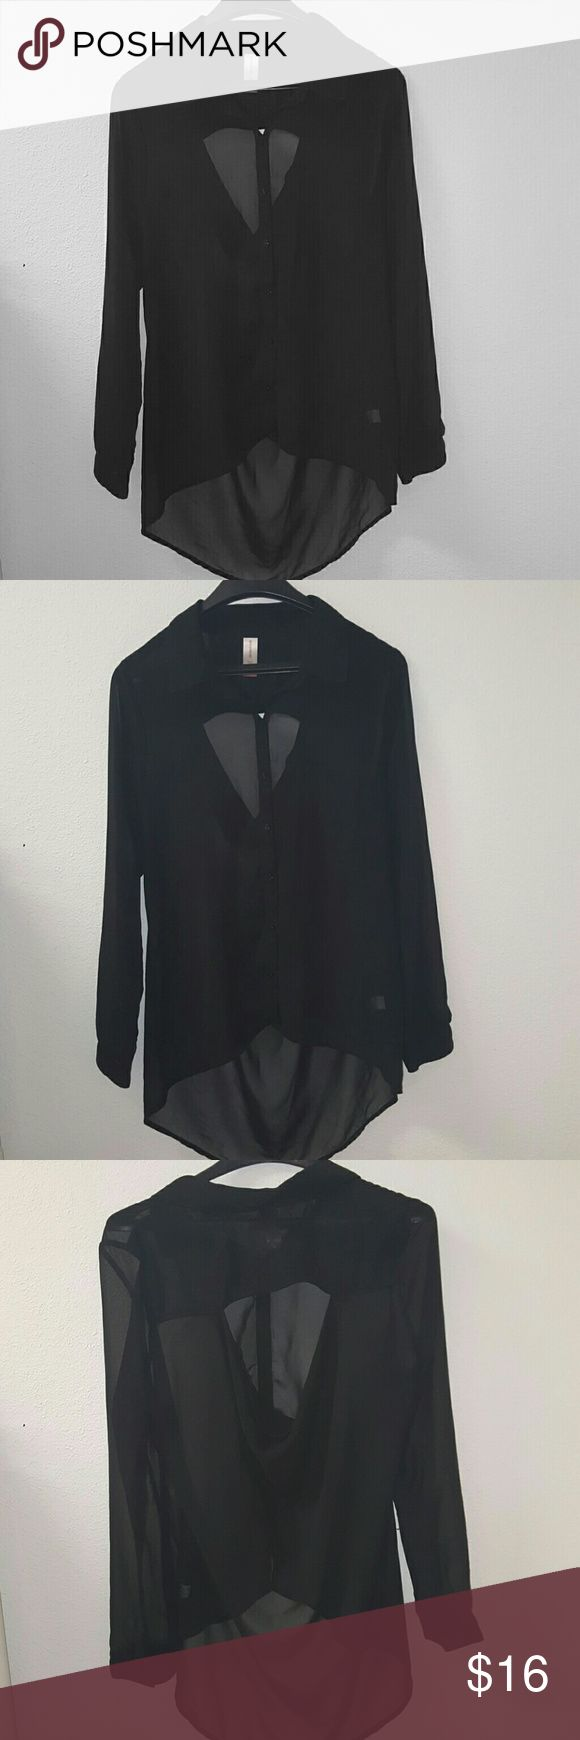 ❤1 day sale today only❤ Black hi-low open back chiffon long sleeve button up top. No Boundaries Tops Button Down Shirts